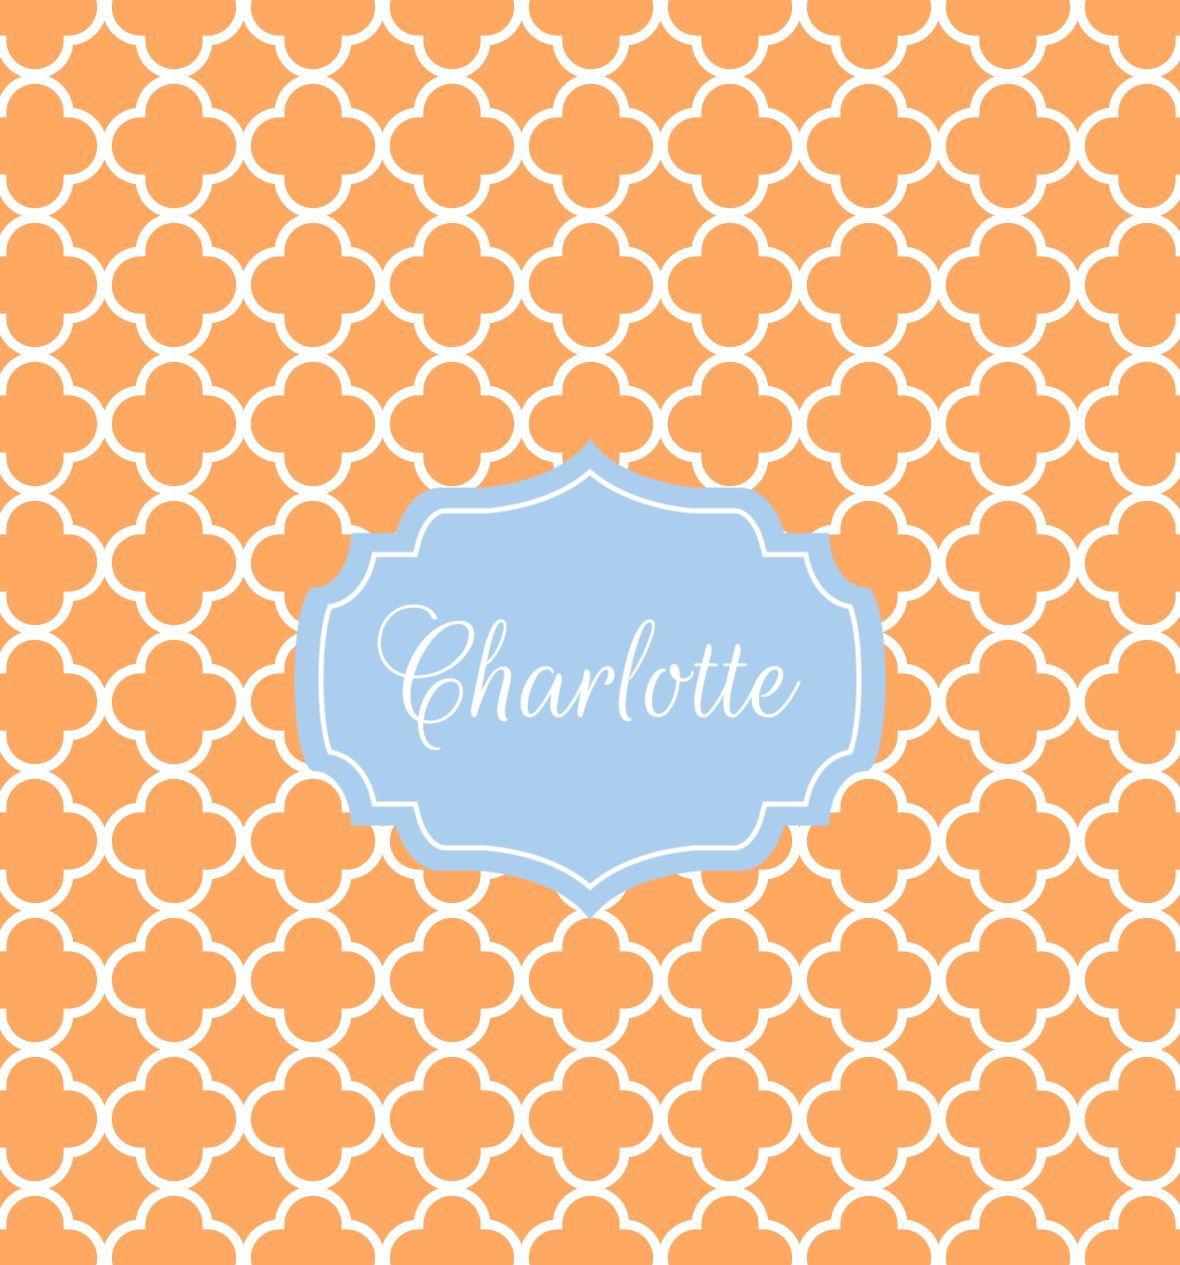 Backgrounds Of The Name Charlotte 1180x1265 Download Hd Wallpaper Wallpapertip